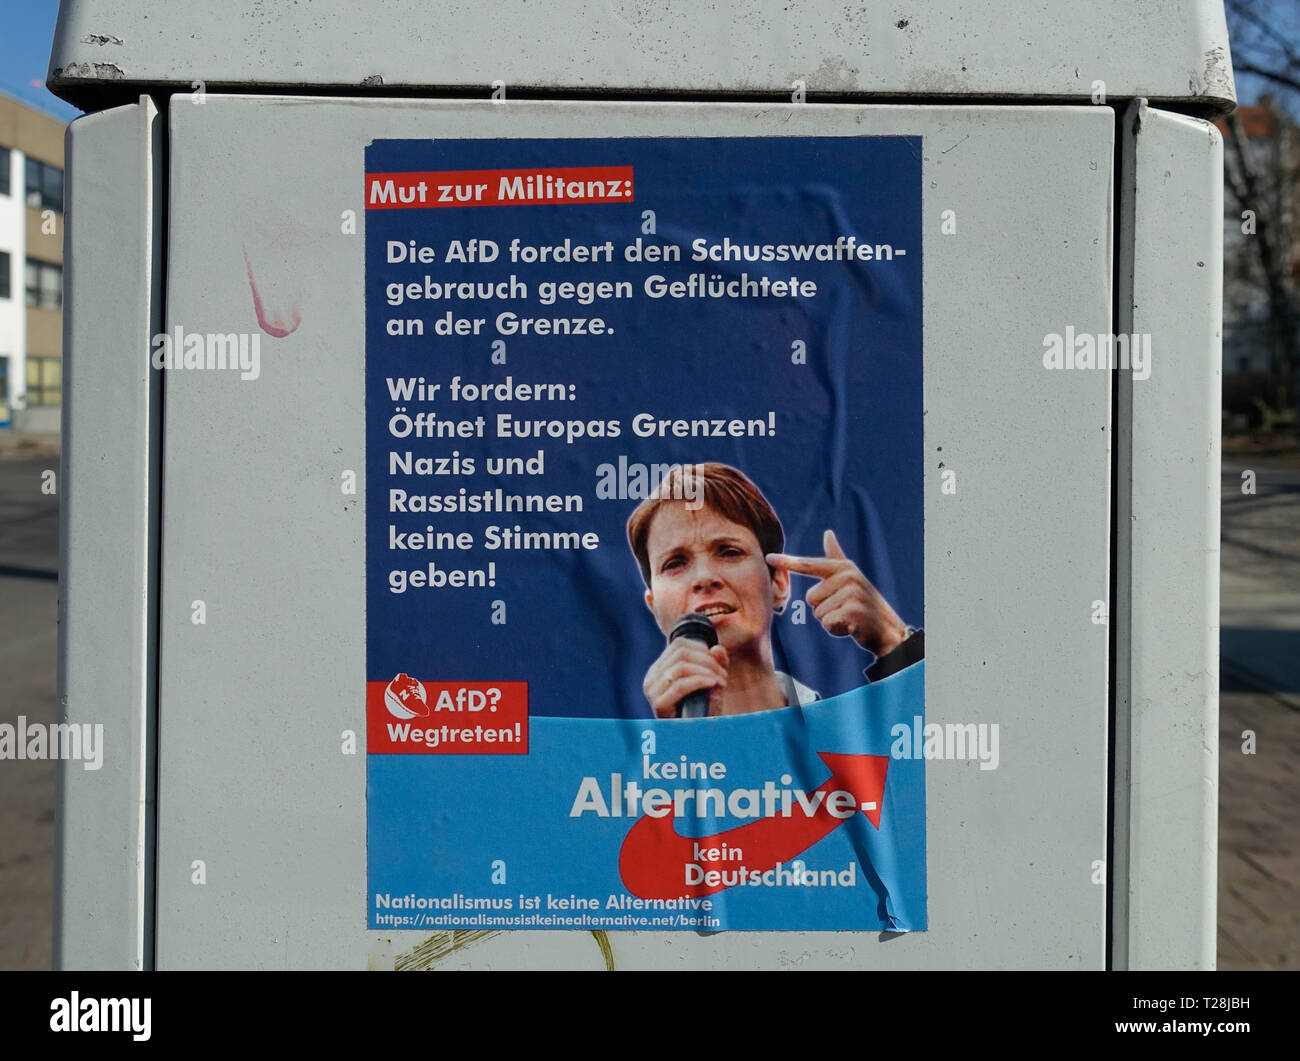 Poster against the AfD, Berlin, Germany - Stock Image